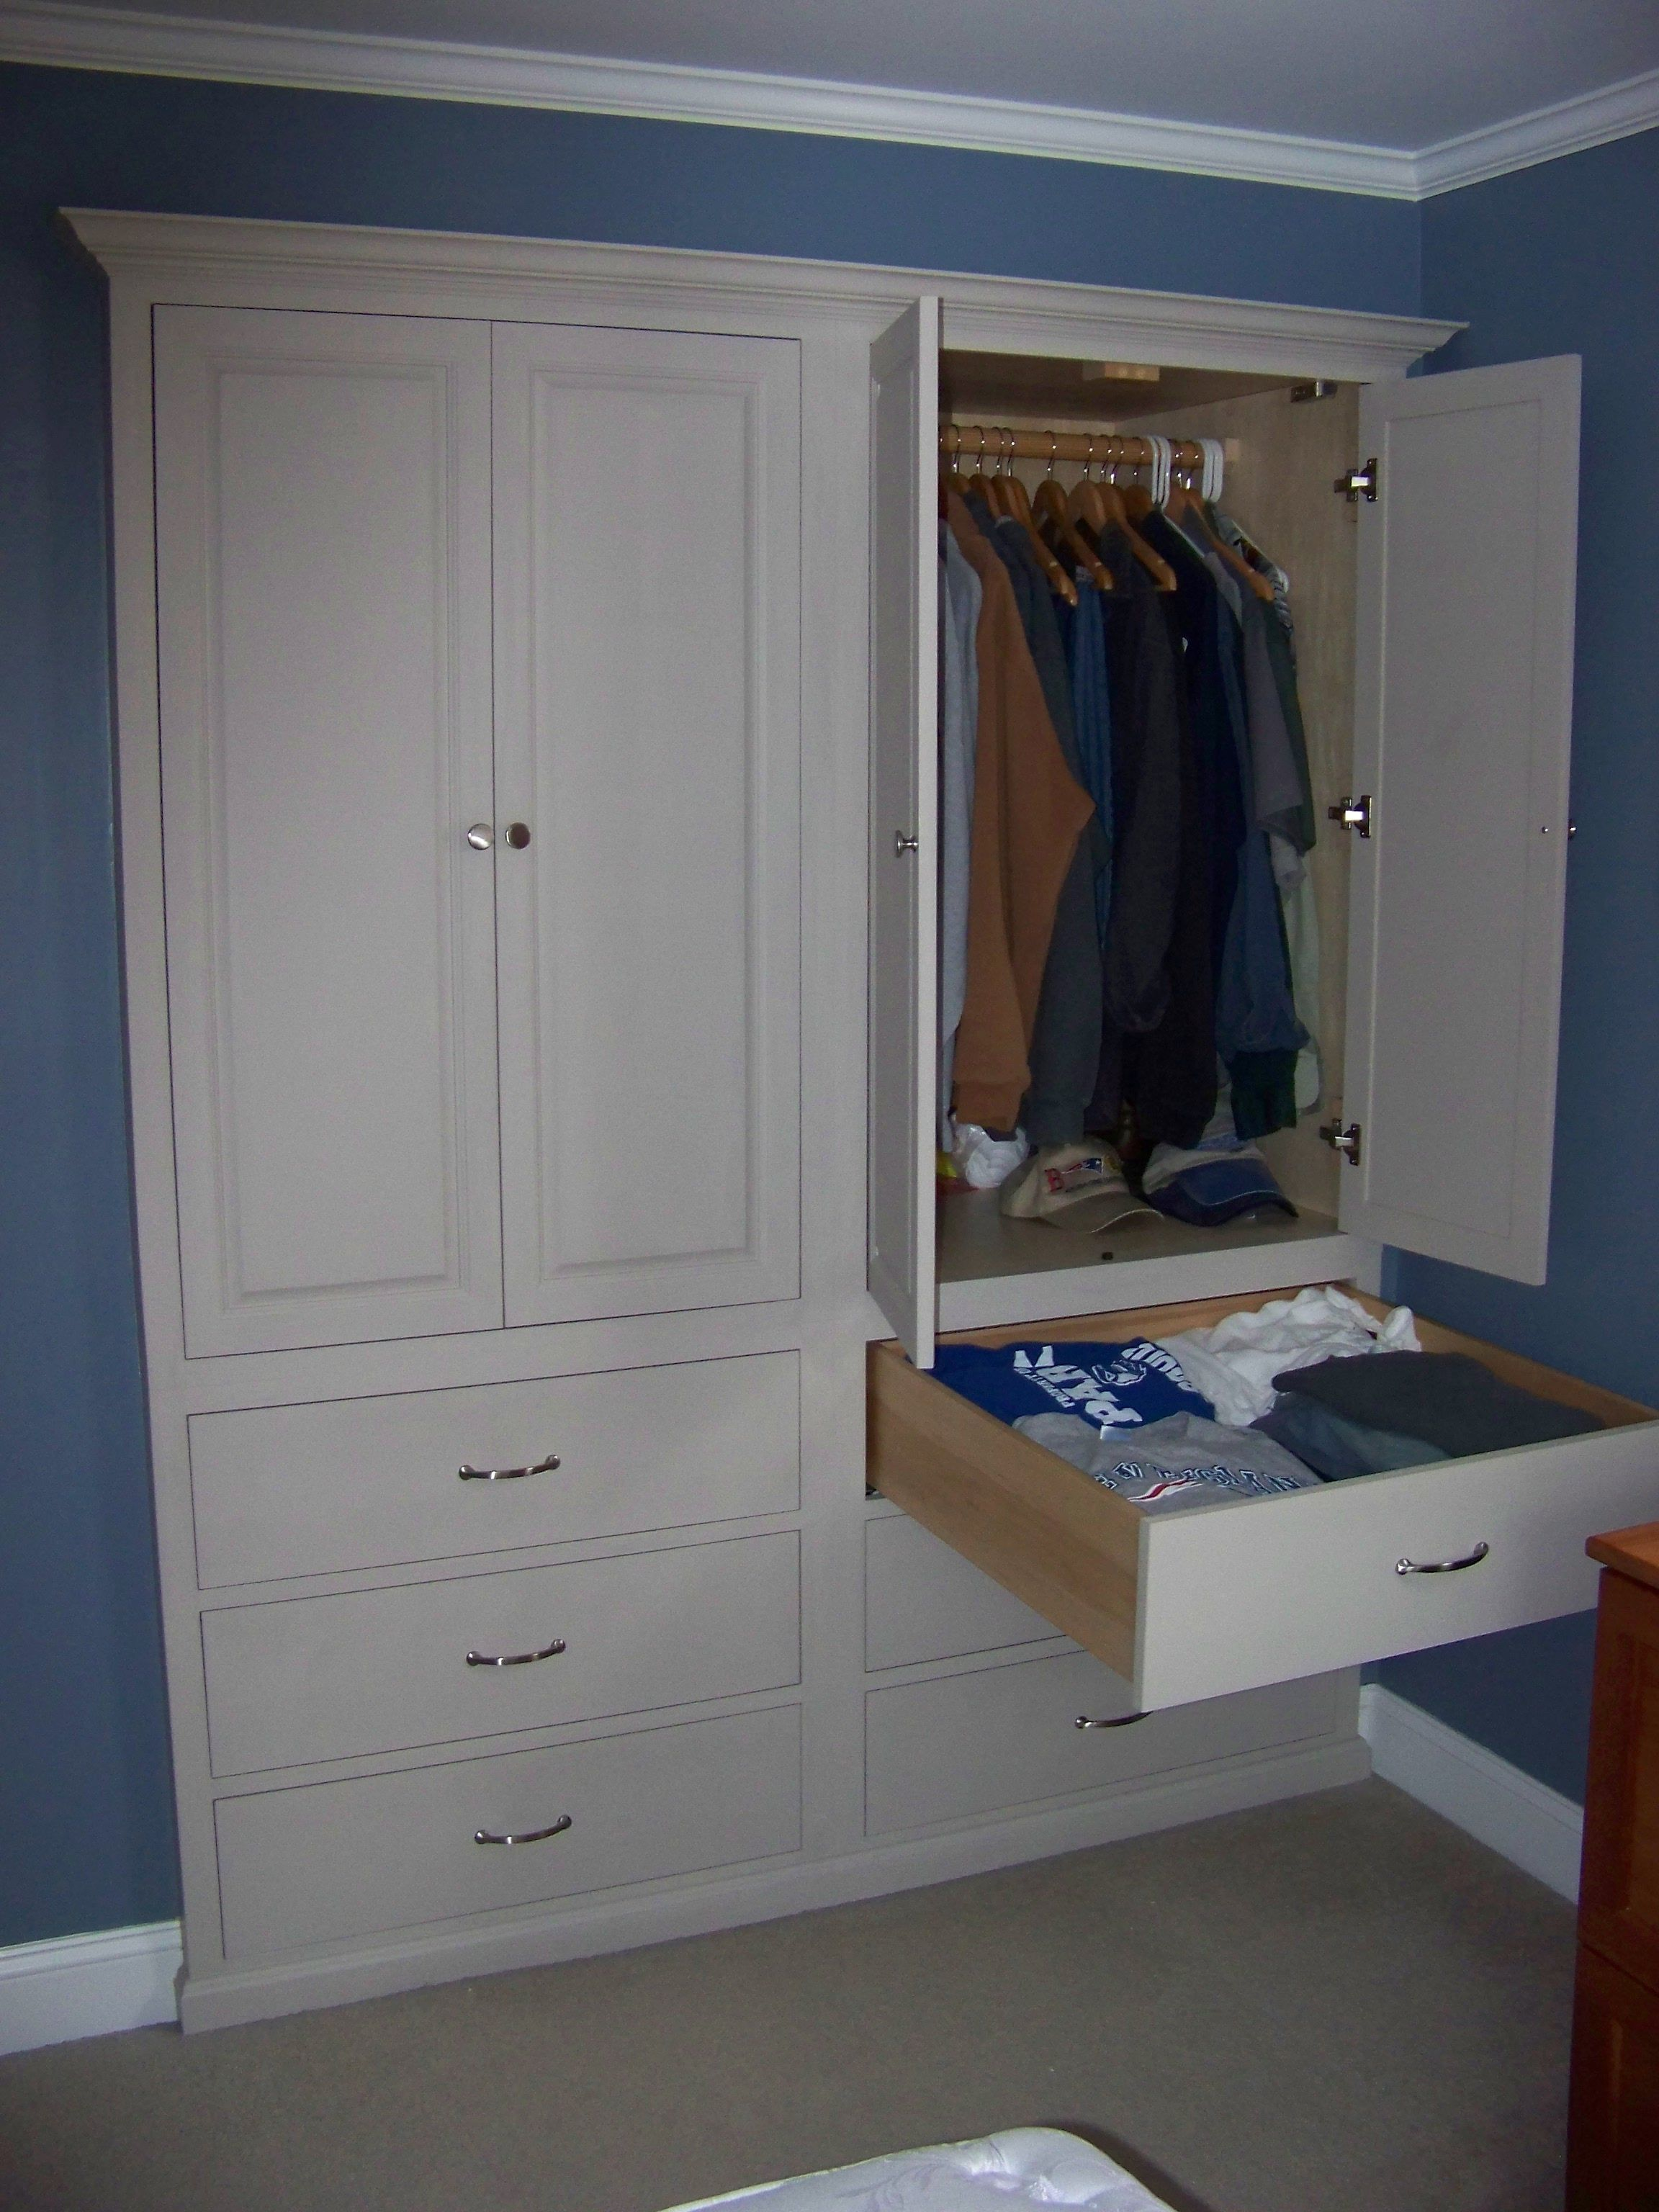 This cabinet was built and installed in a standard double for Great closets